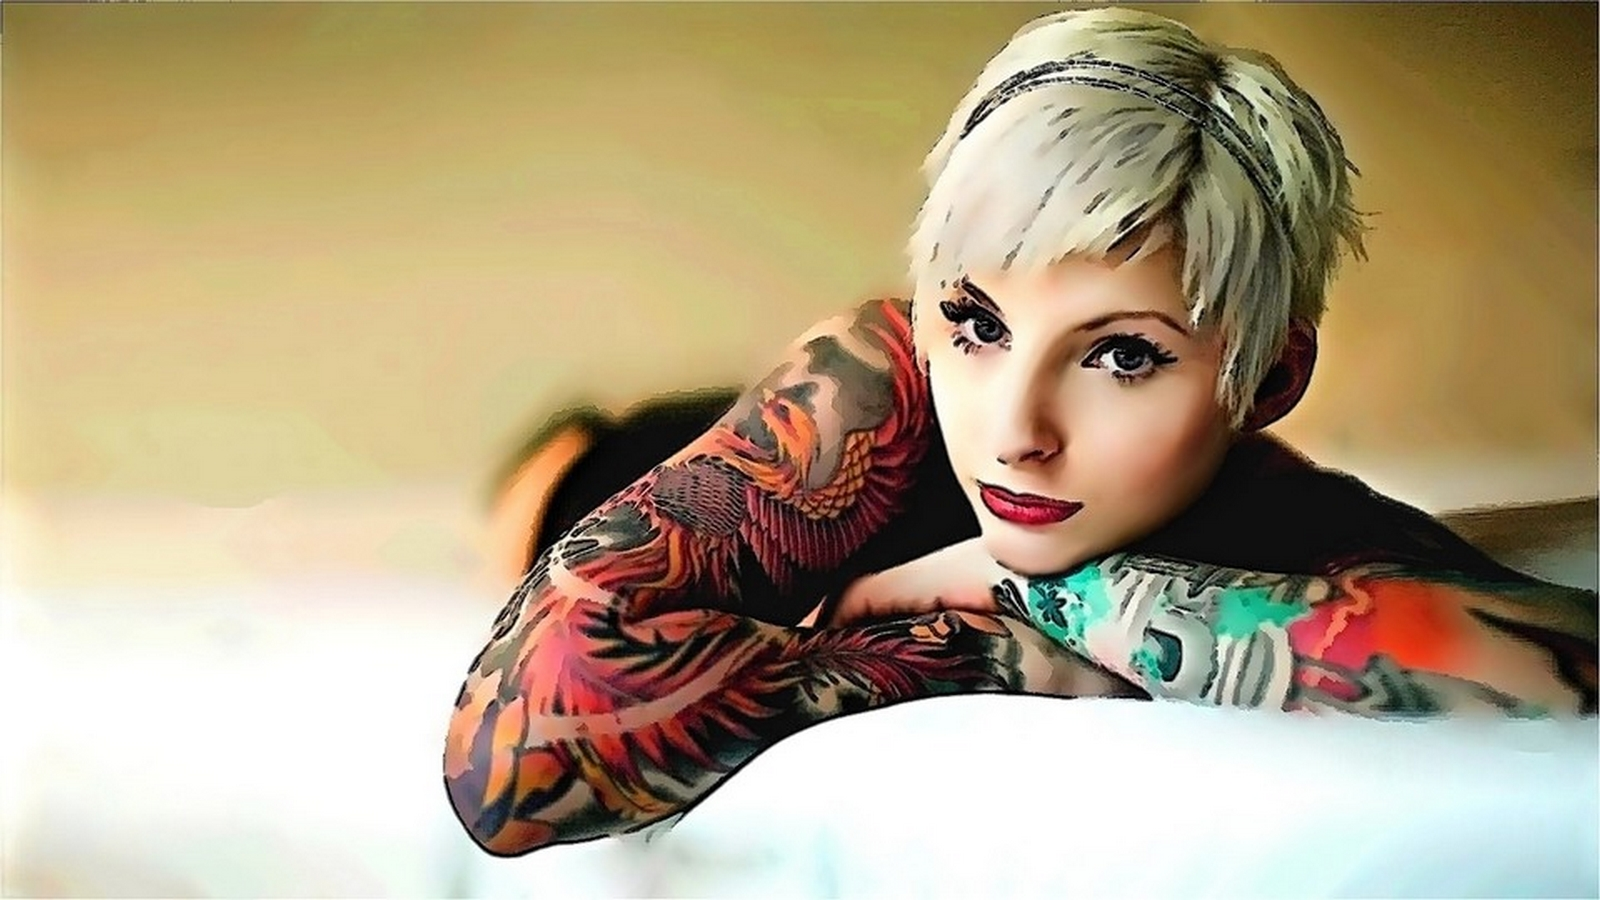 Tattooed Women Wallpapers Part 2 1600x900